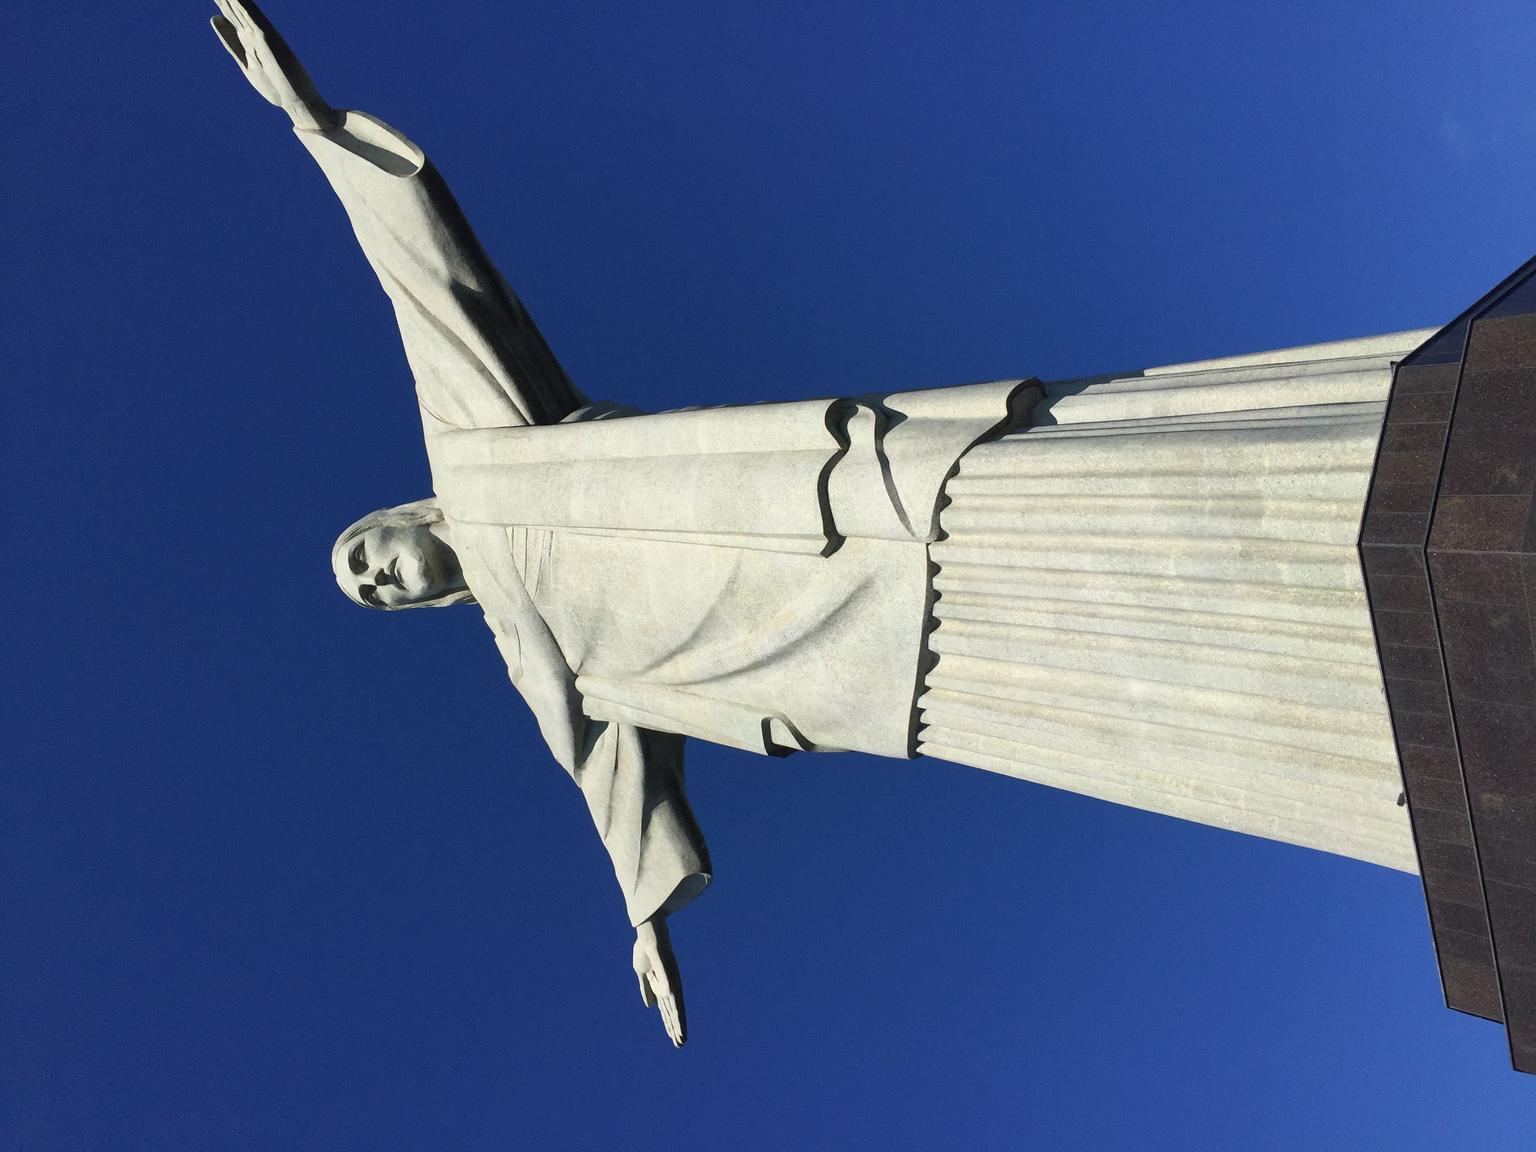 Corcovado with Christ Statue - Be One of the First to Get There